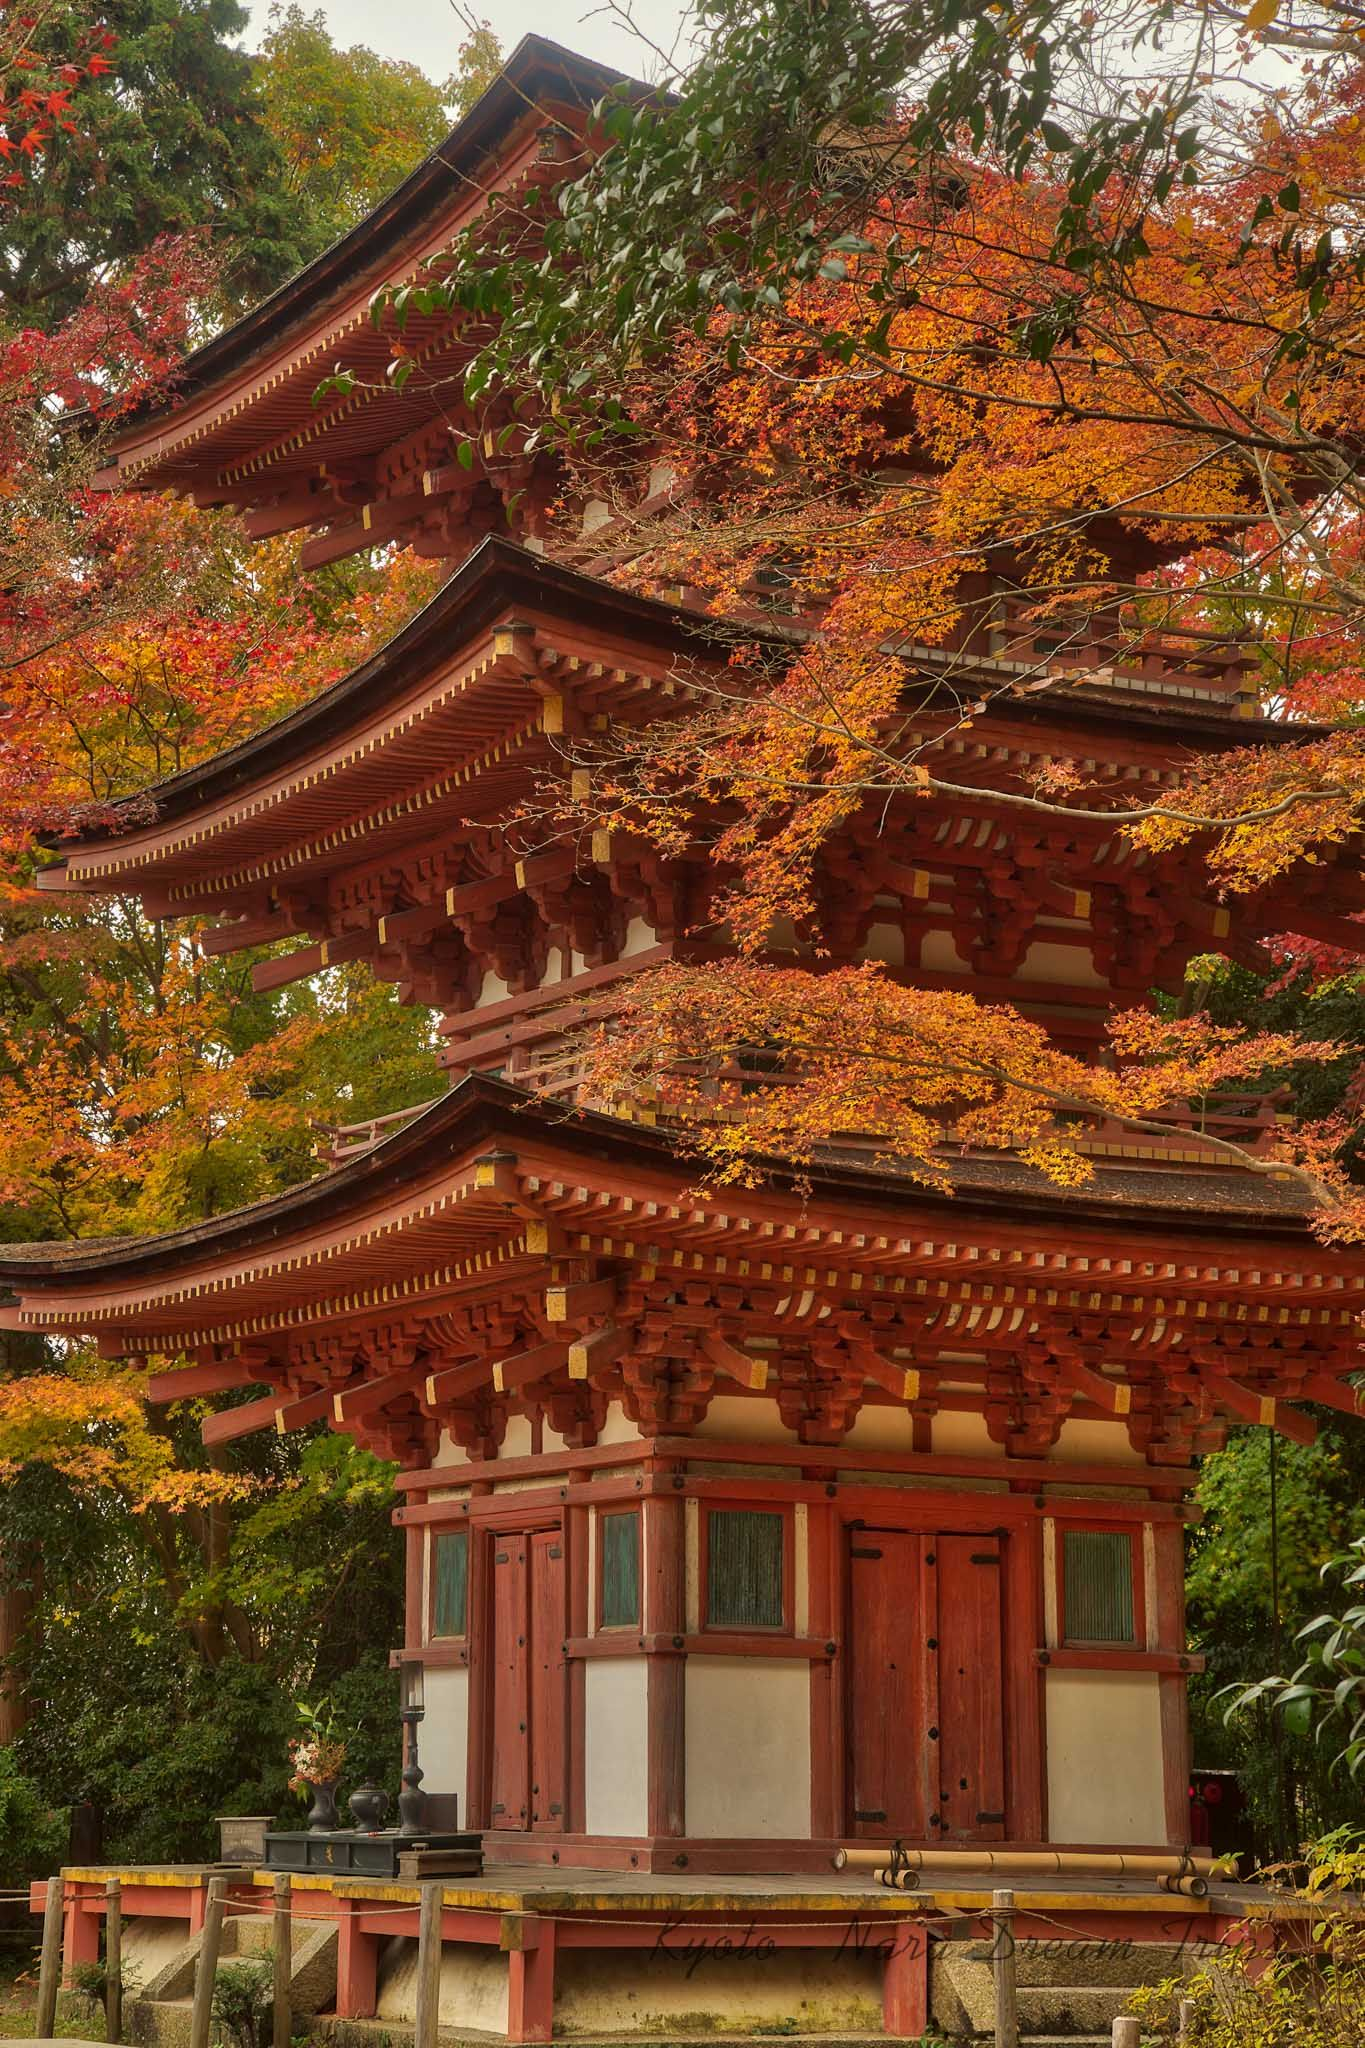 Autumn Scenery at Jōruri-ji Temple, Kizugawa-shi, Kyōto-fu-Japan. #autumnscenery